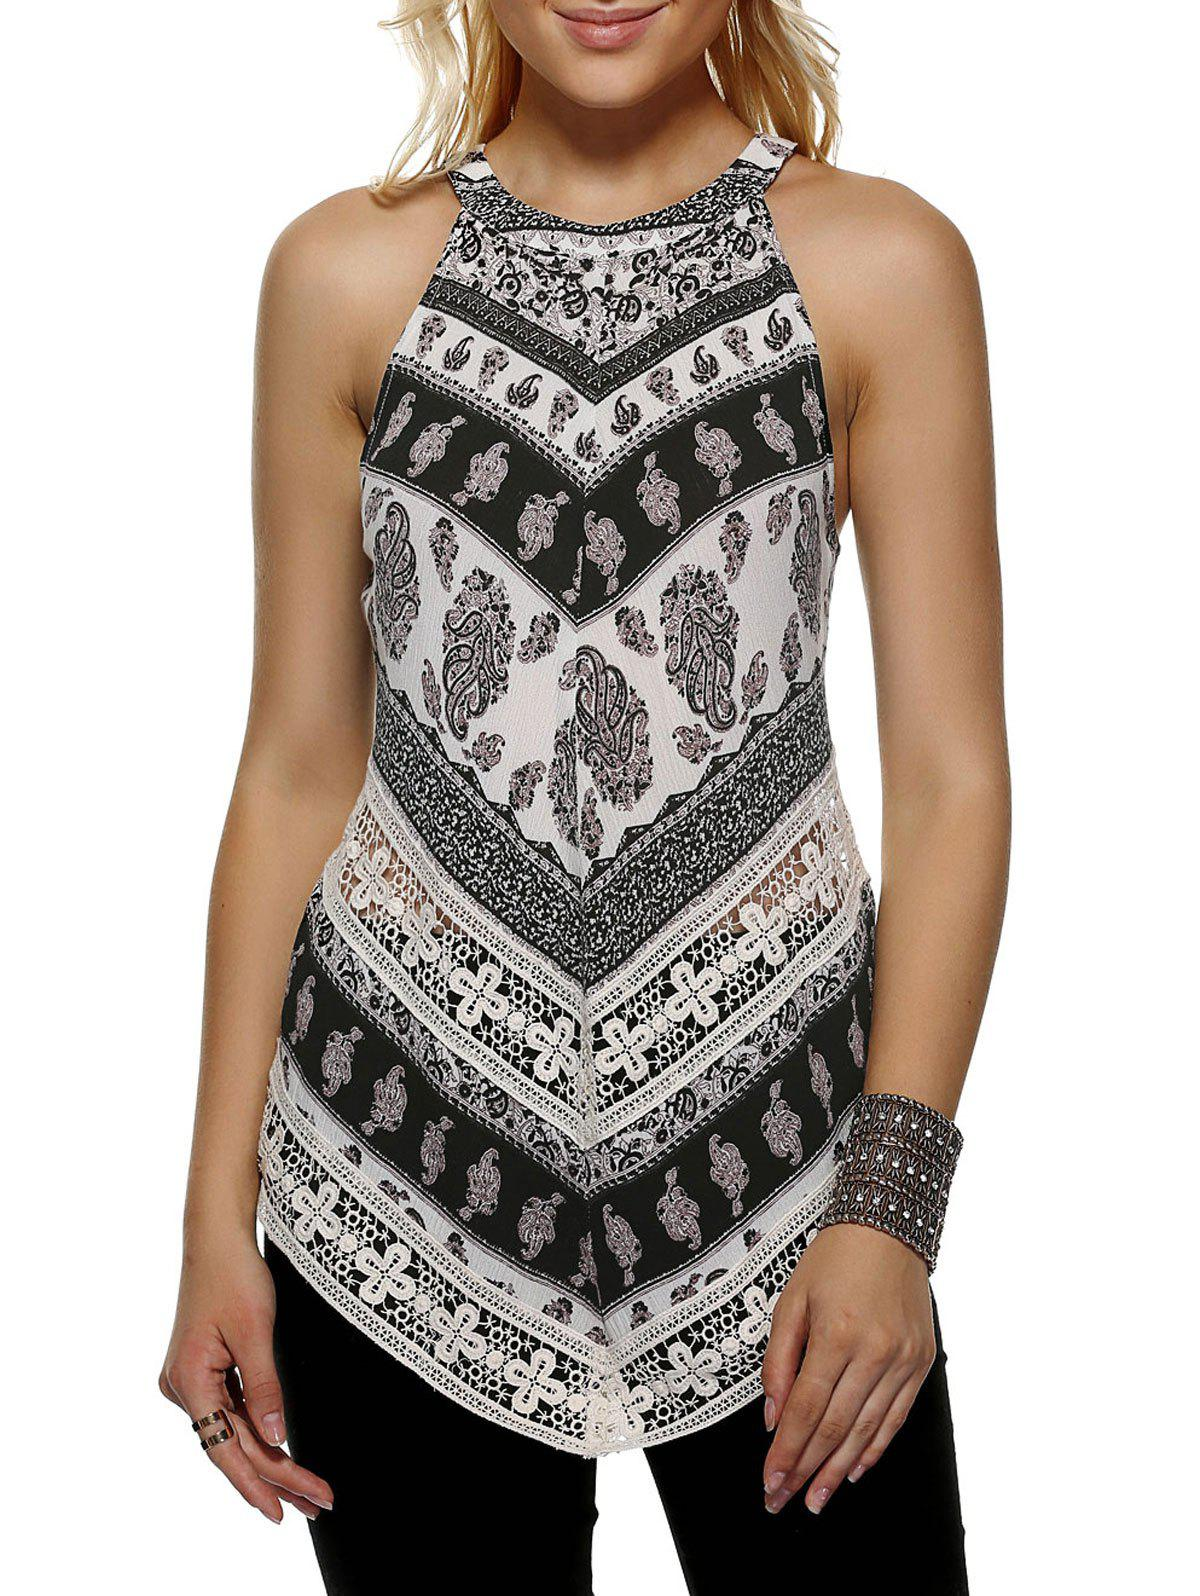 Fashionable Women's Round Neck Print Loose-Fitting Tank Top - COLORMIX XL